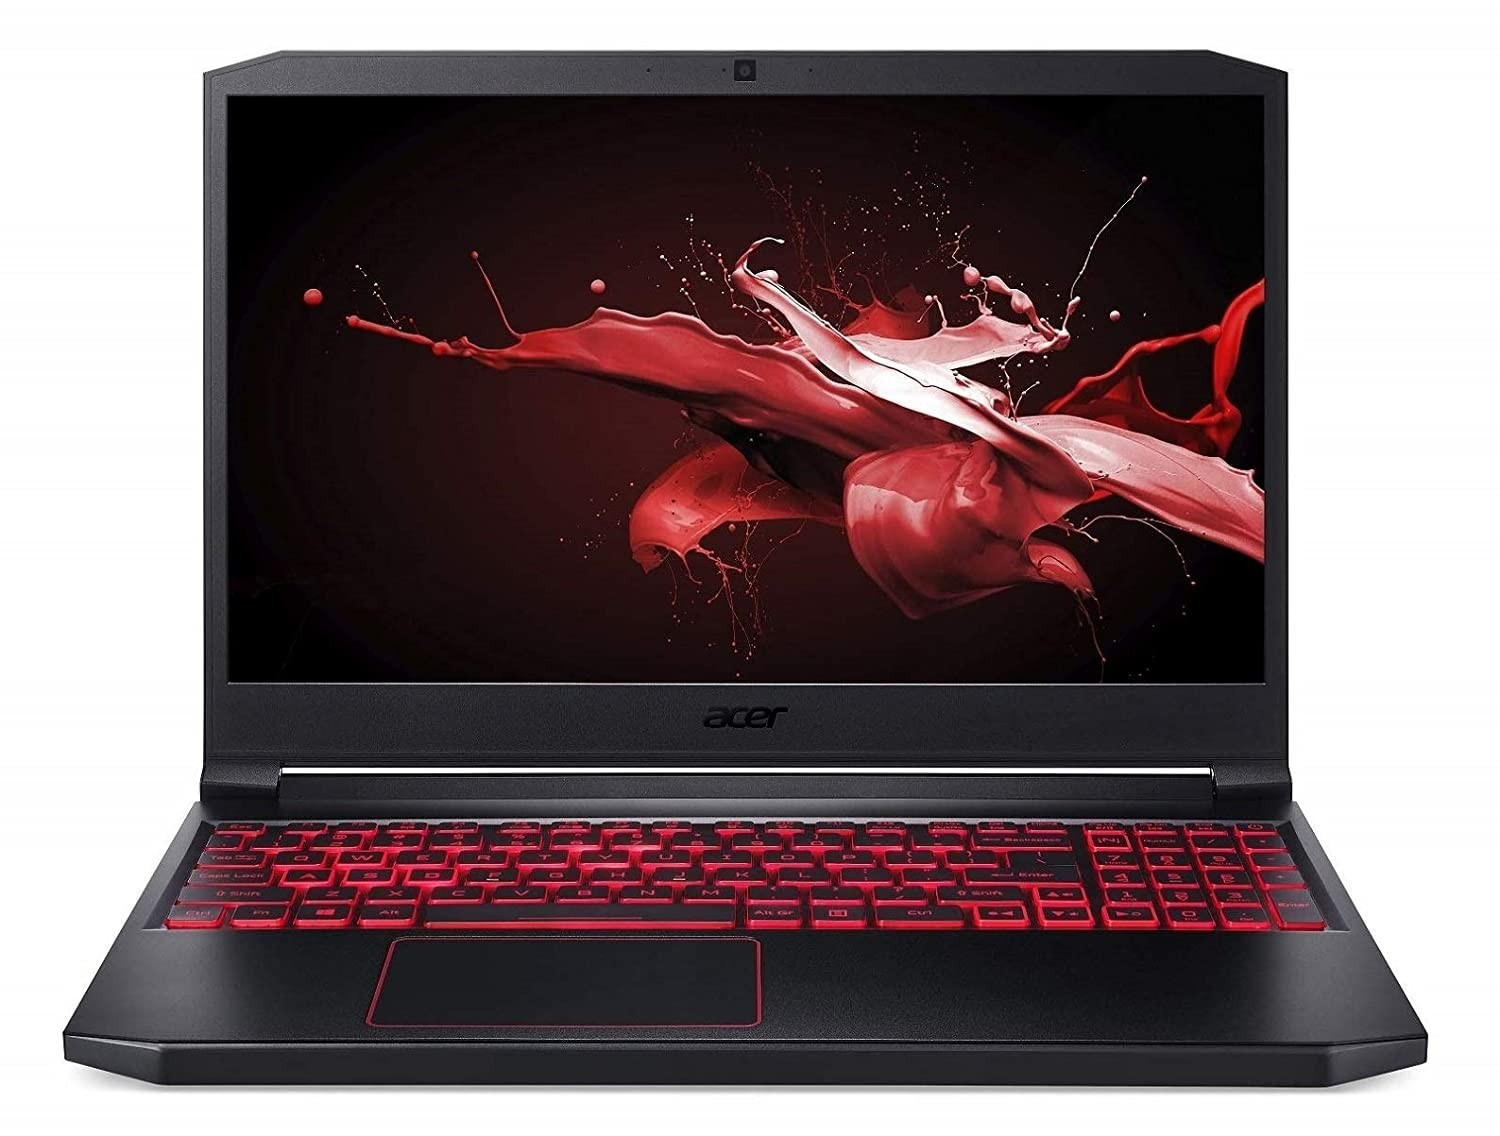 Refurbished laptops & desktops - Acer Nitro 7 Intel Core i5-9300H Processor 15.6-inch Thin & Light Gaming 1920 X 1080 Laptop (8 GB RAM/ 1 TB HDD +256GB SSD/ Win 10 / 6 GB NVIDIA GeForce GTX 1660Ti /Obsidian Black/ 2.5 kgs), AN715-51